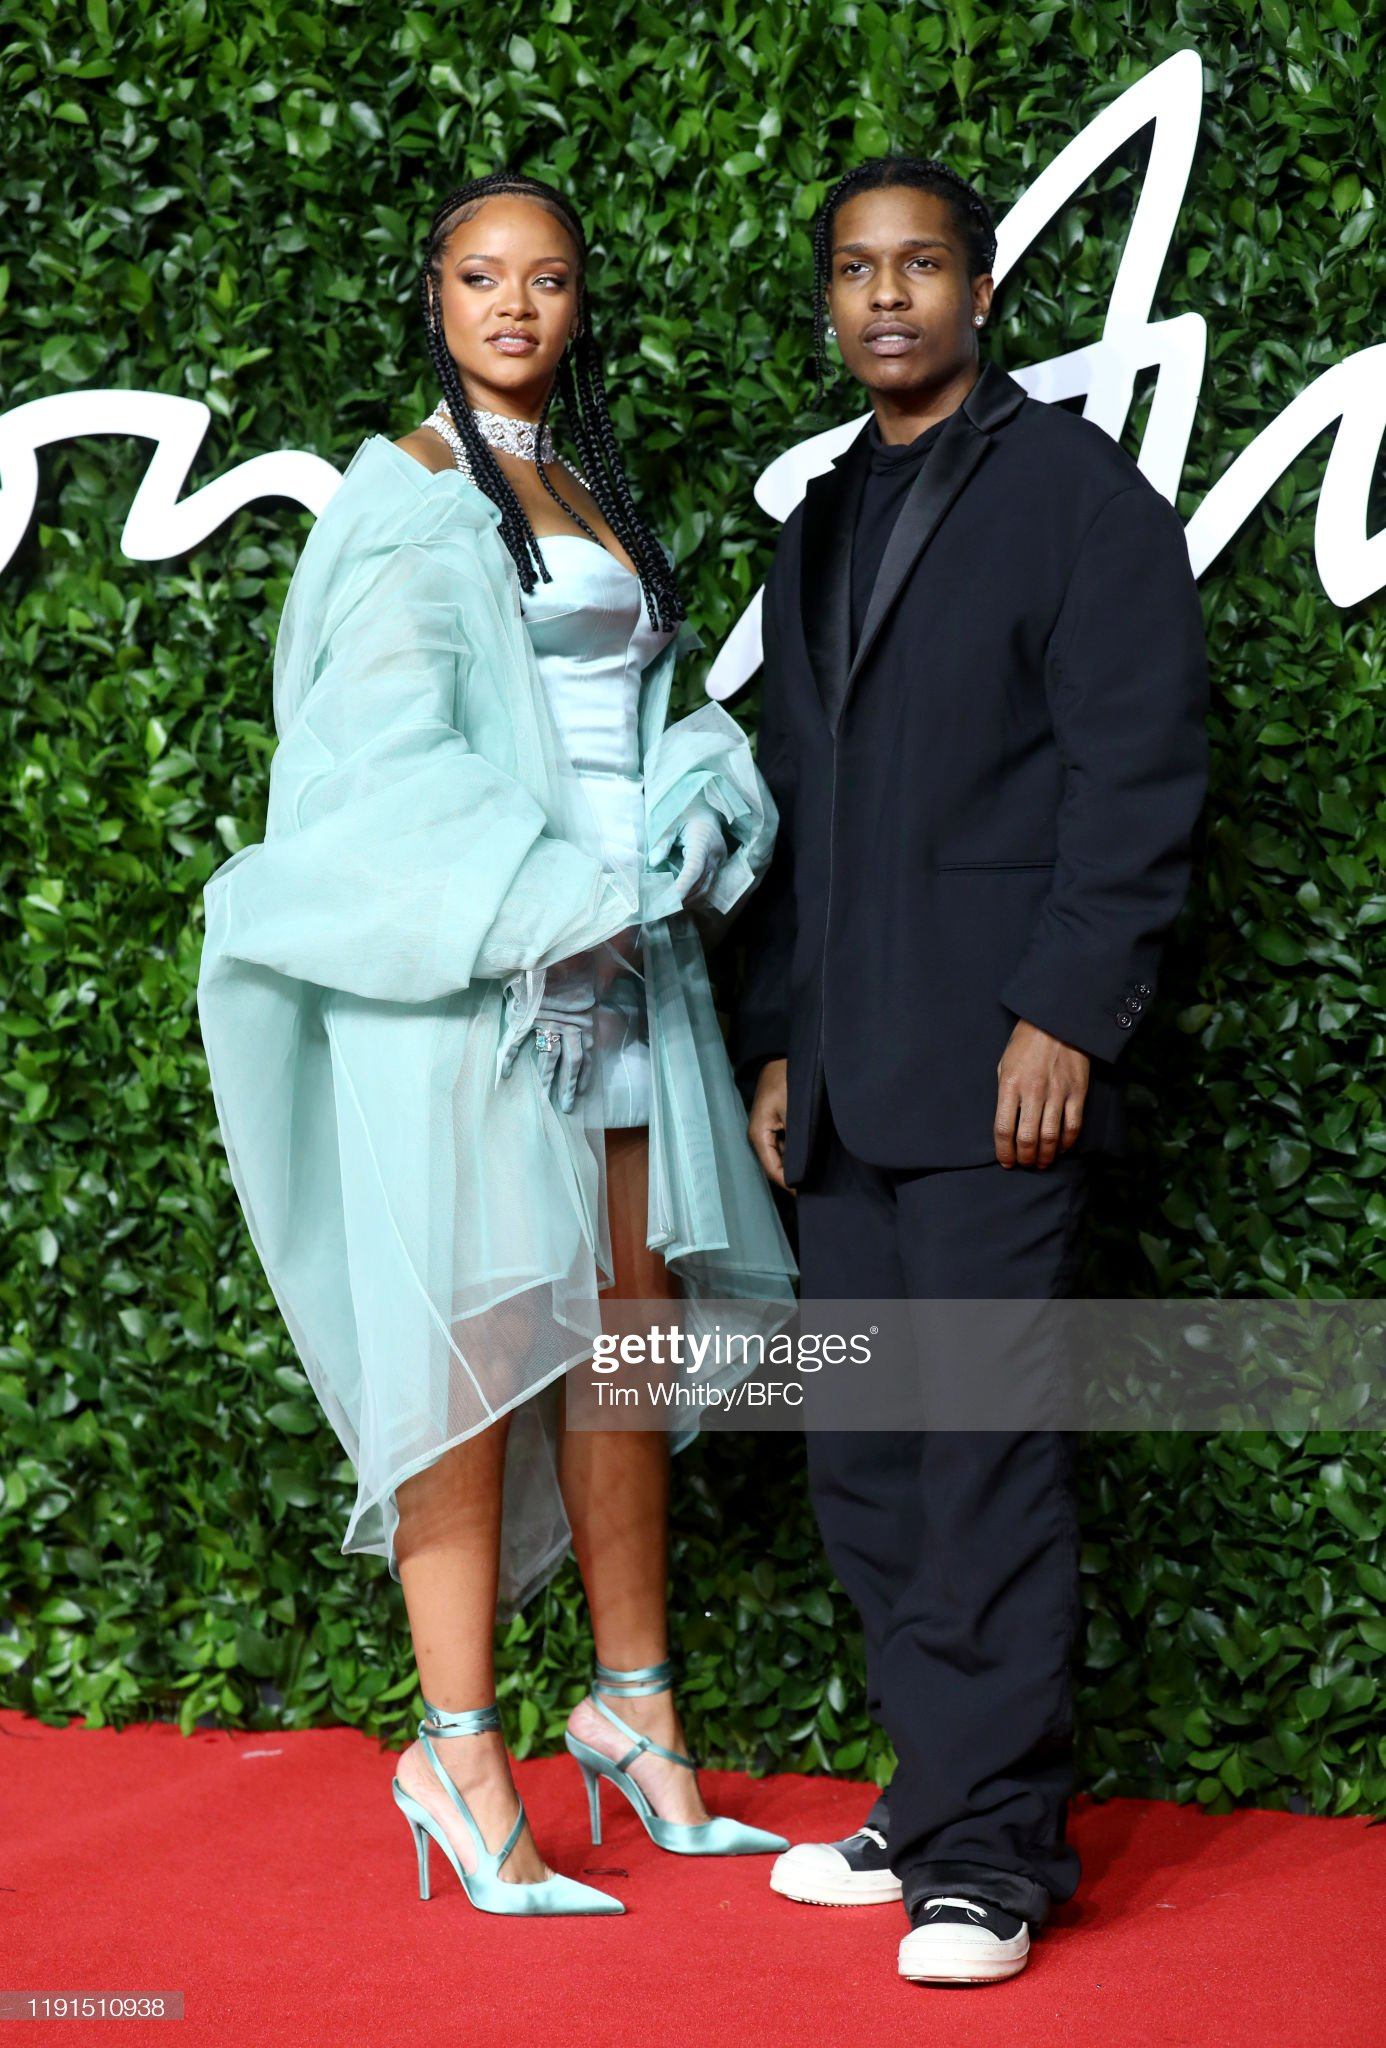 ¿Cuánto mide ASAP Rocky? - Altura - Real height Rihanna-and-asap-rocky-arrive-at-the-fashion-awards-2019-held-at-picture-id1191510938?s=2048x2048